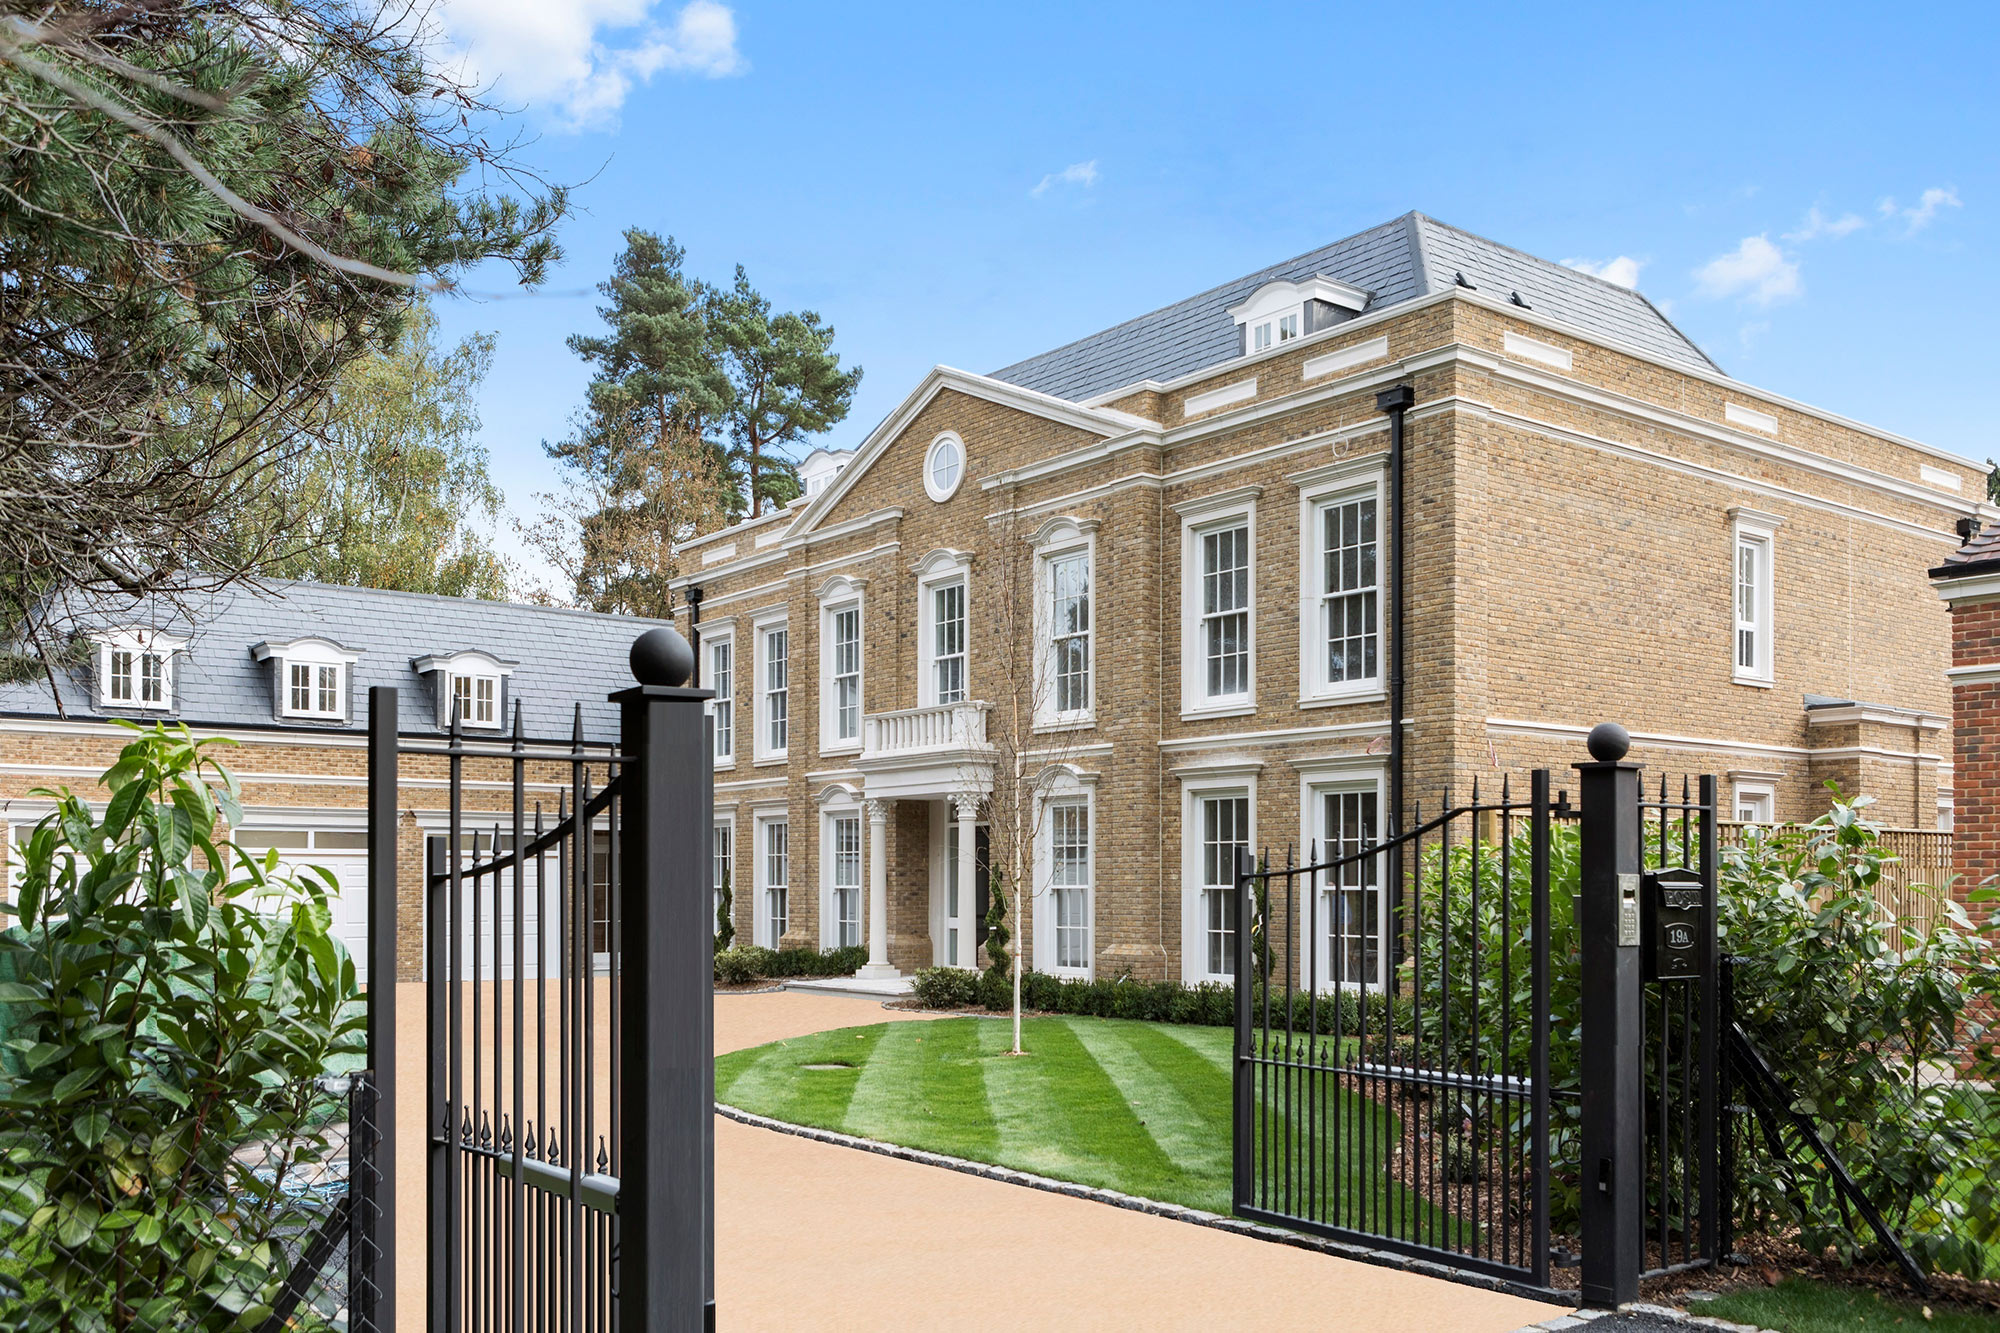 Luxury new homes octagon sell 6 bedroom mansion on the for Modern luxury homes for sale uk